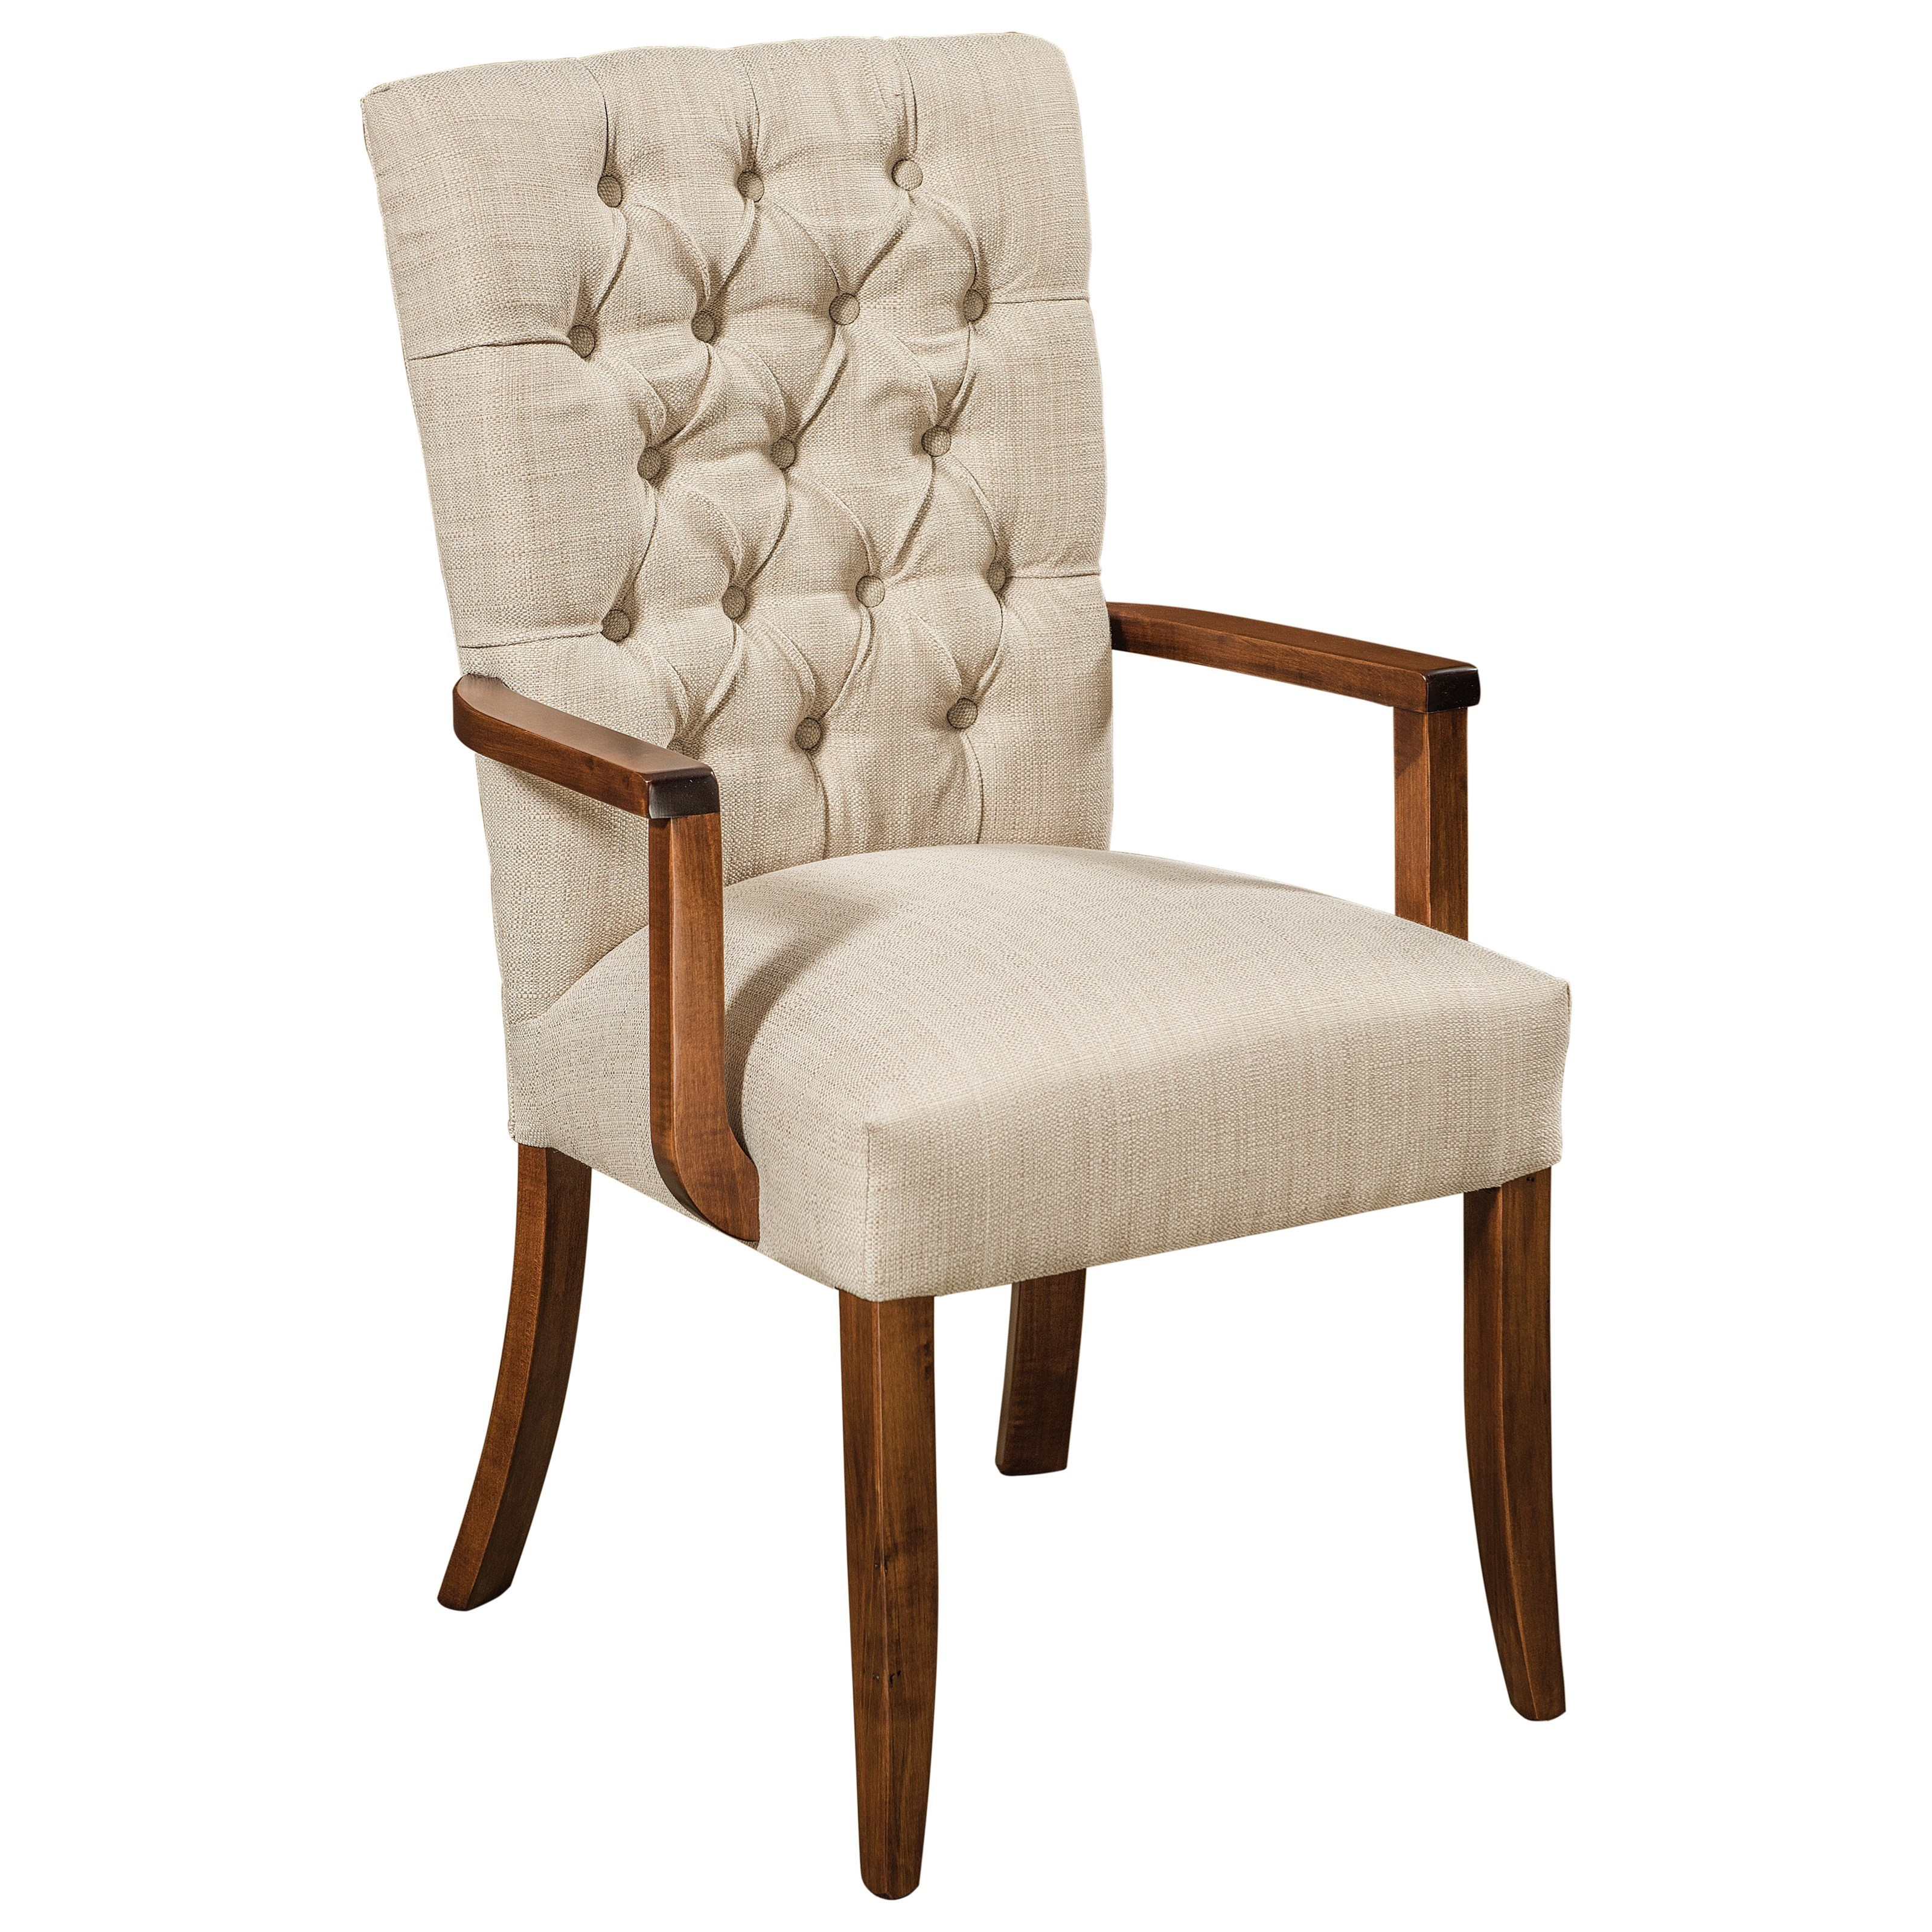 Alana Customizable Solid Wood Arm Chair by F&N Woodworking at Mueller Furniture